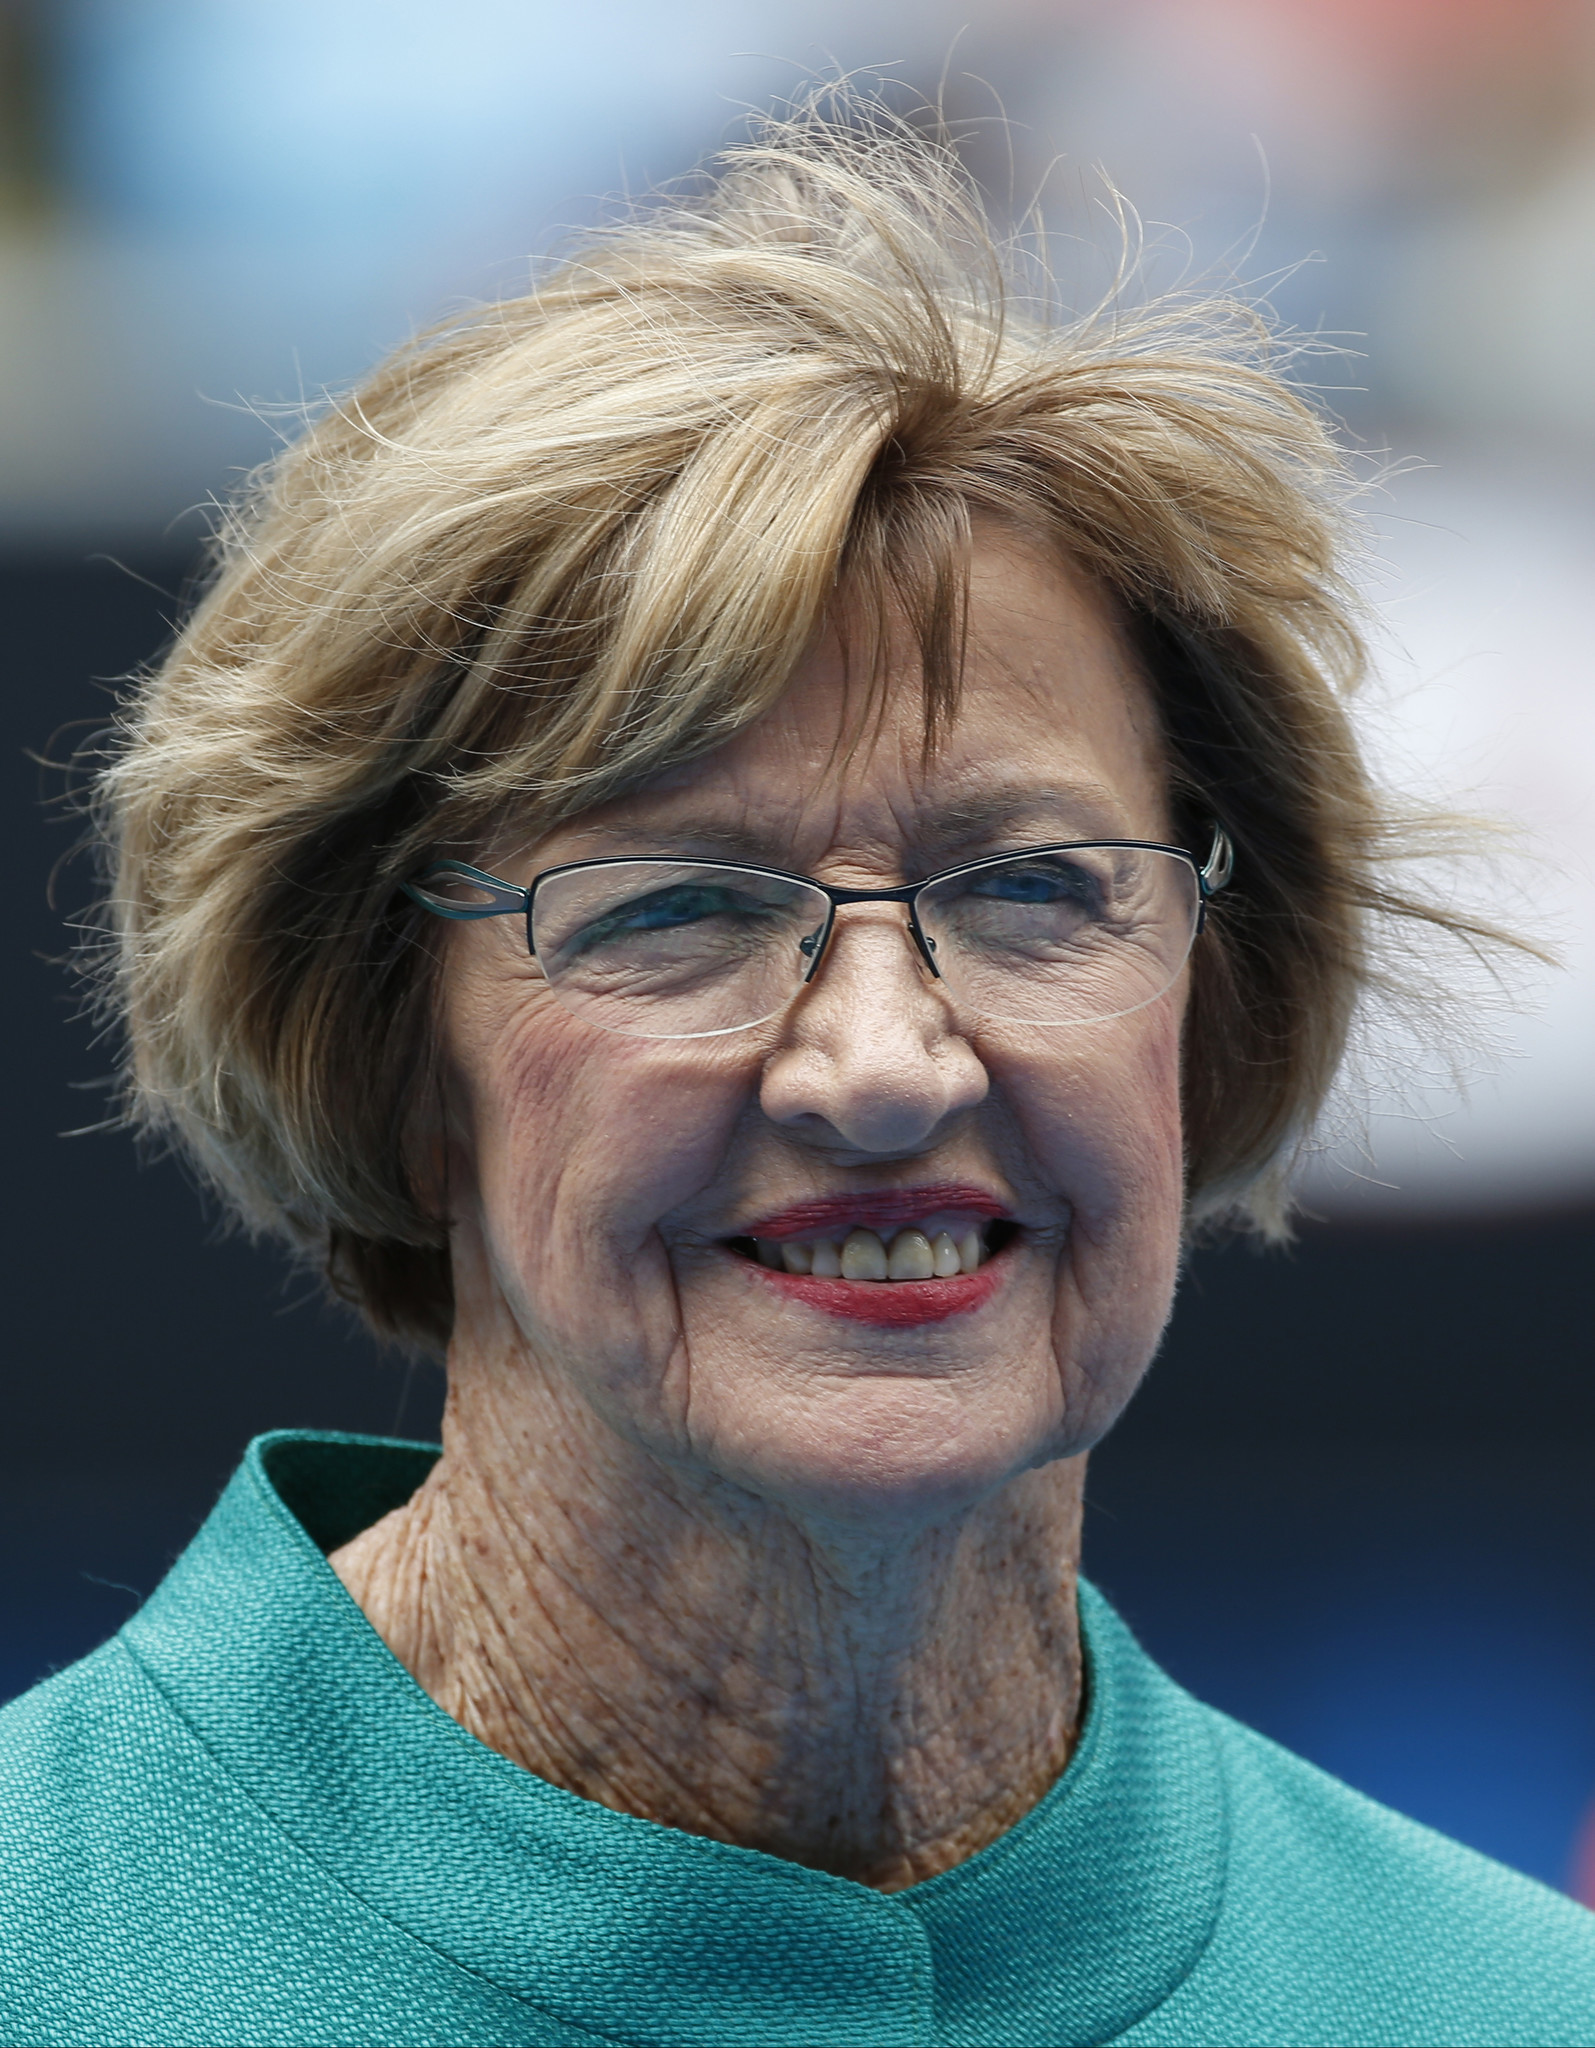 Ex tennis great Margaret Court will stop using Qantas over same